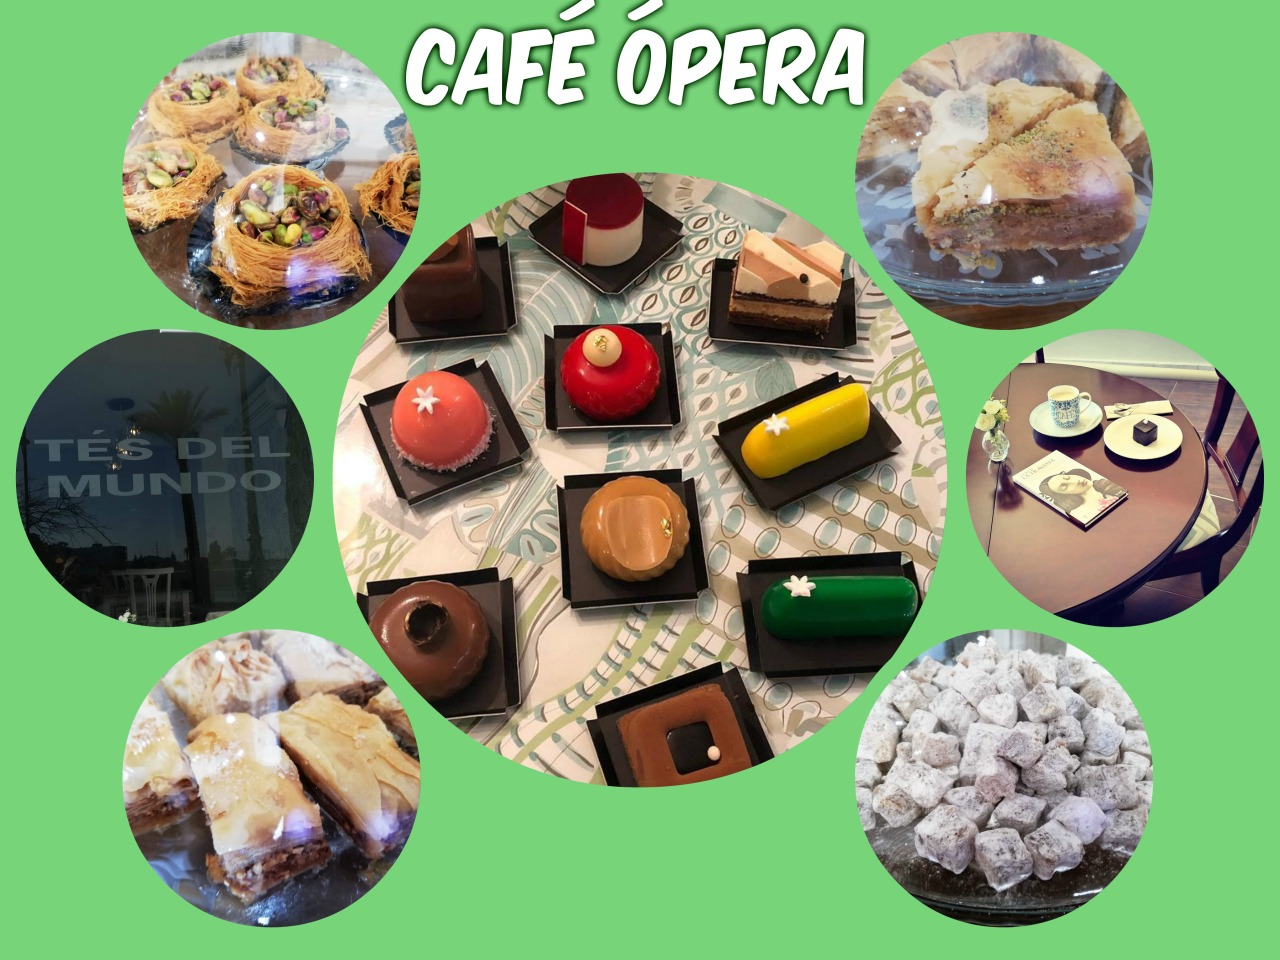 Discover Sherry recommends: Opera Coffee and Tea House (Café Opera)